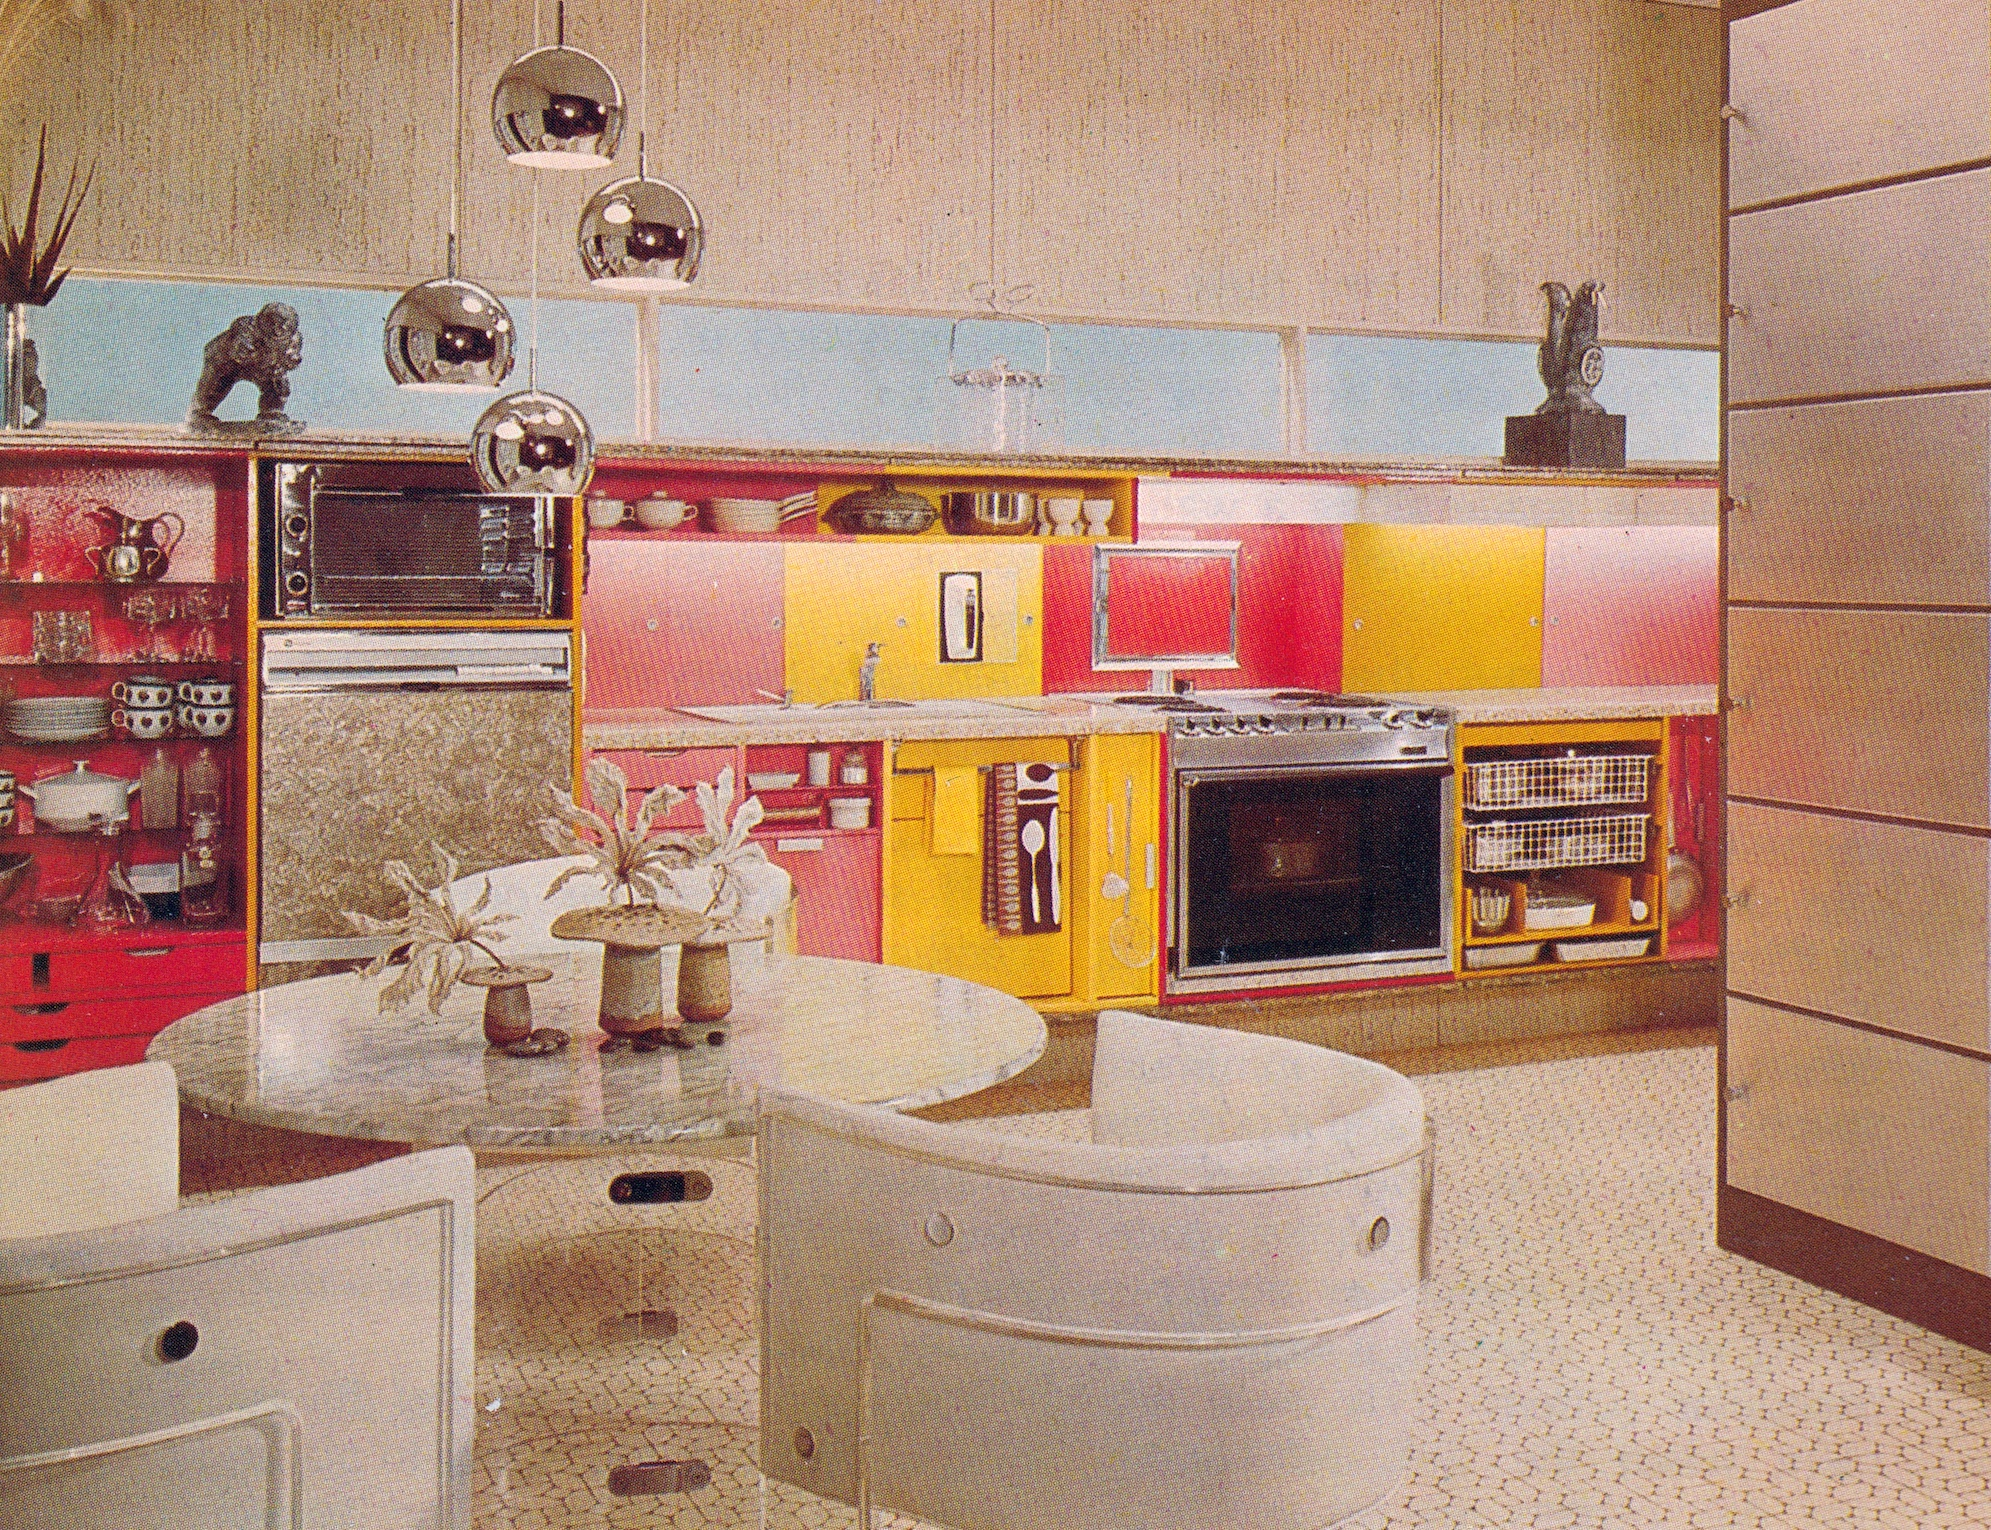 Techicolor kitchen fantasia featured in the 1975 Better Homes Decorating Book.